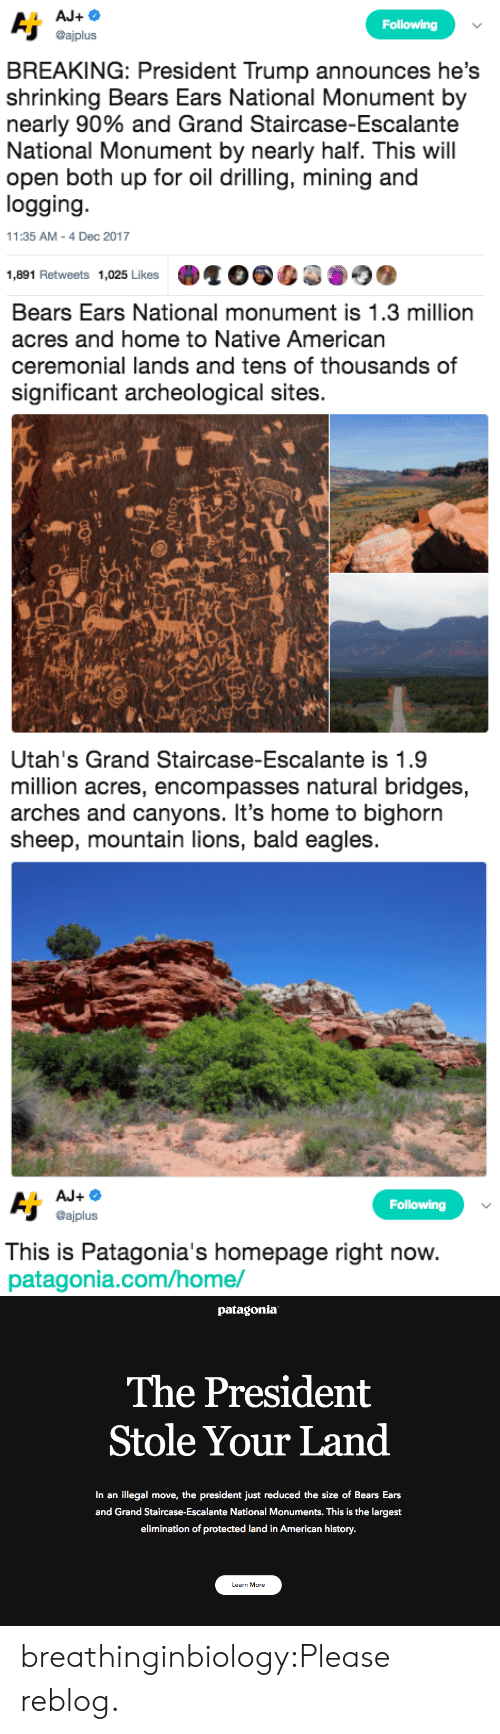 Philadelphia Eagles, Native American, and Target: Following  @ajplus  BREAKING: President Trump announces he's  shrinking Bears Ears National Monument by  nearly 90% and Grand Staircase-Escalante  National Monument by nearly half. This will  open both up for oil drilling, mining and  logging  11:35 AM-4 Dec 2017  1,891 Retweets 1,025 Likes   Bears Ears National monument is 1.3 million  acres and home to Native American  ceremonial lands and tens of thousands of  significant archeological sites.  sh   Utah's Grand Staircase-Escalante is 1.9  million acres, encompasses natural bridges,  arches and canyons. It's home to bighorn  sheep, mountain lions, bald eagles   Following  @ajplus  This is Patagonia's homepage right now  patagonia.com/home/   patagonia  The President  Stole Your Land  In an illegal move, the president just reduced the size of Bears Ears  and Grand Staircase-Escalante National Monuments. This is the largest  elimination of protected land in American history.  Learn More breathinginbiology:Please reblog.